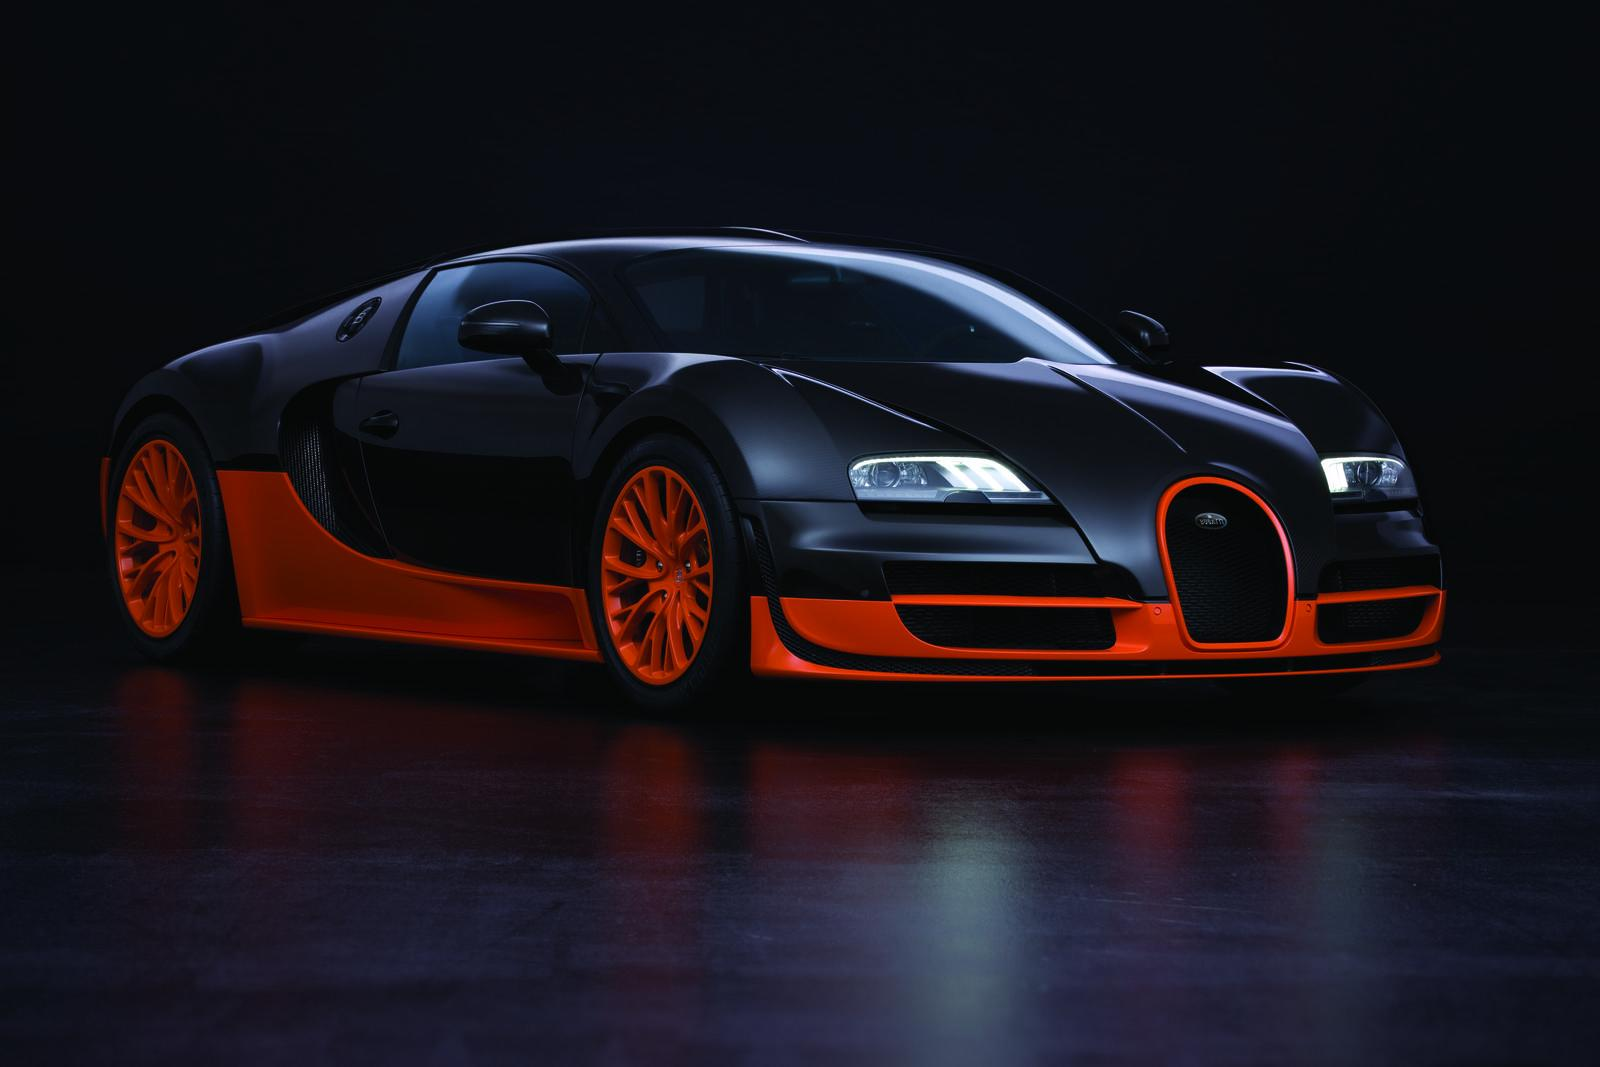 Bugatti Has Marked Its New Landspeed World Record For Production Cars With  Its Veyron 16.4 Super Sport On The Proving Grounds Of The Volkswagen Group  At ...